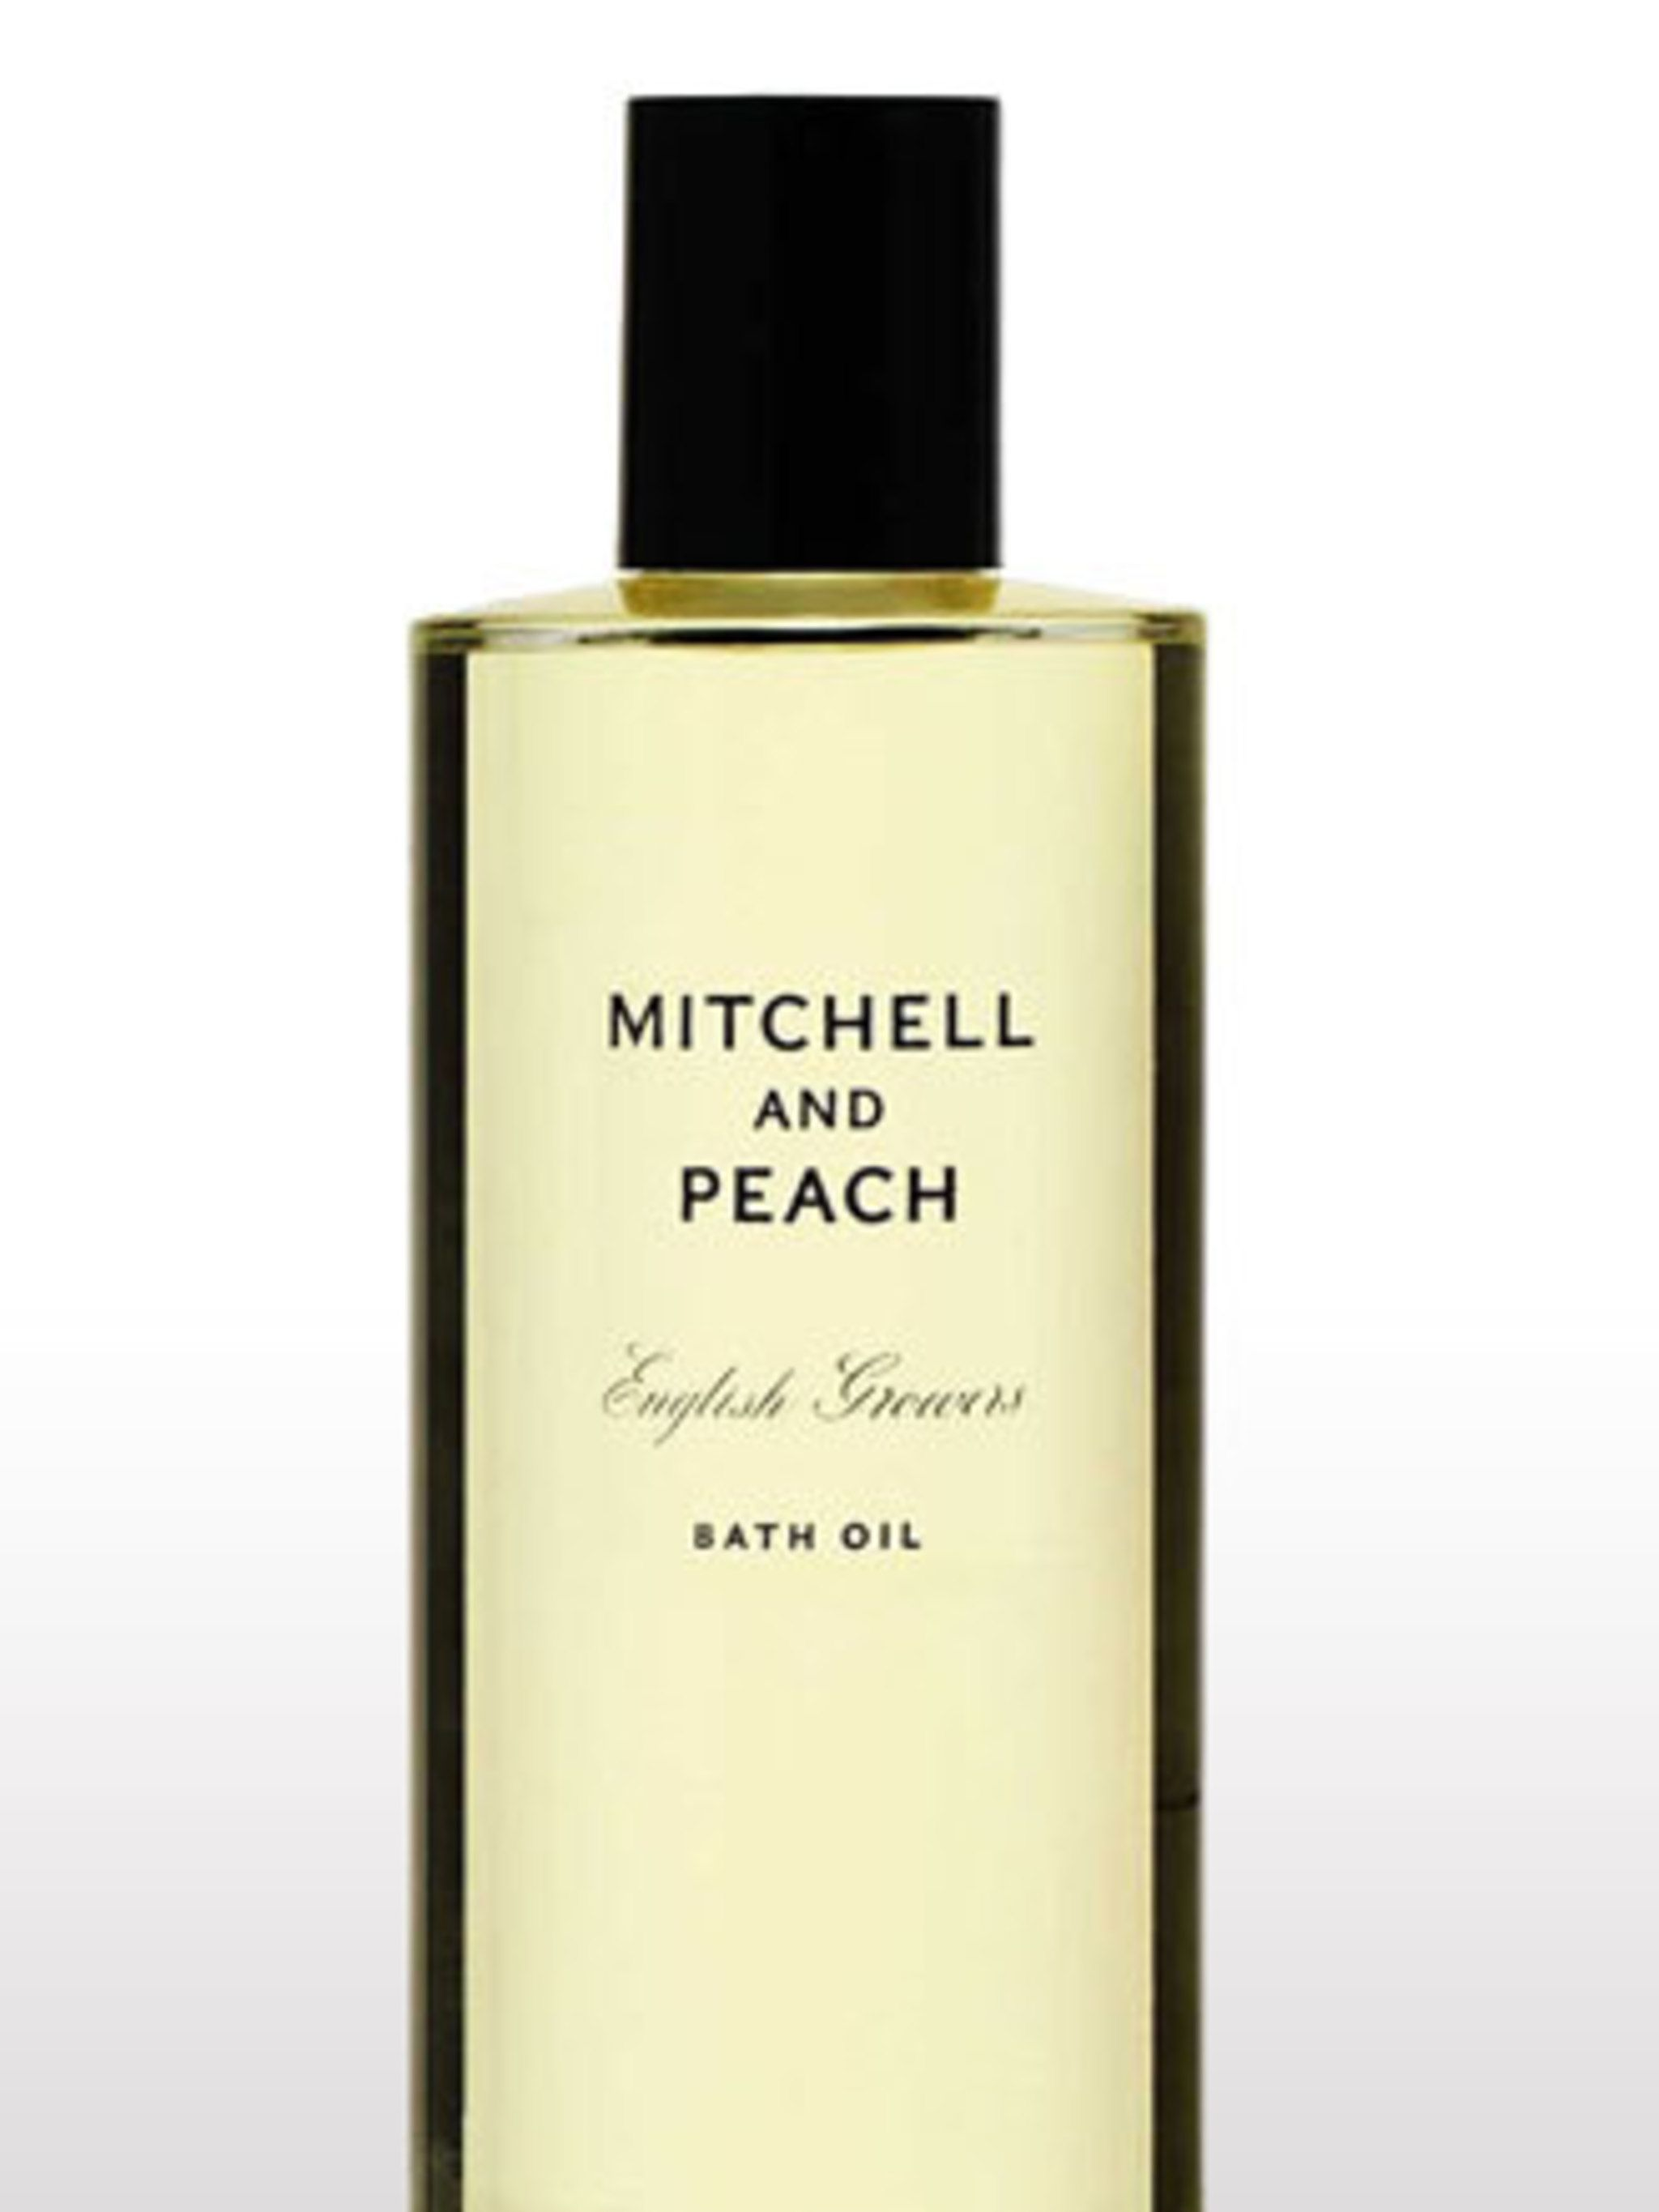 "<p><a href=""http://www.mitchellandpeach.com/collection/bath-oil/products_id/1/cPath/0"">Mitchell and Peach</a>, Bath Oil, £39</p>"